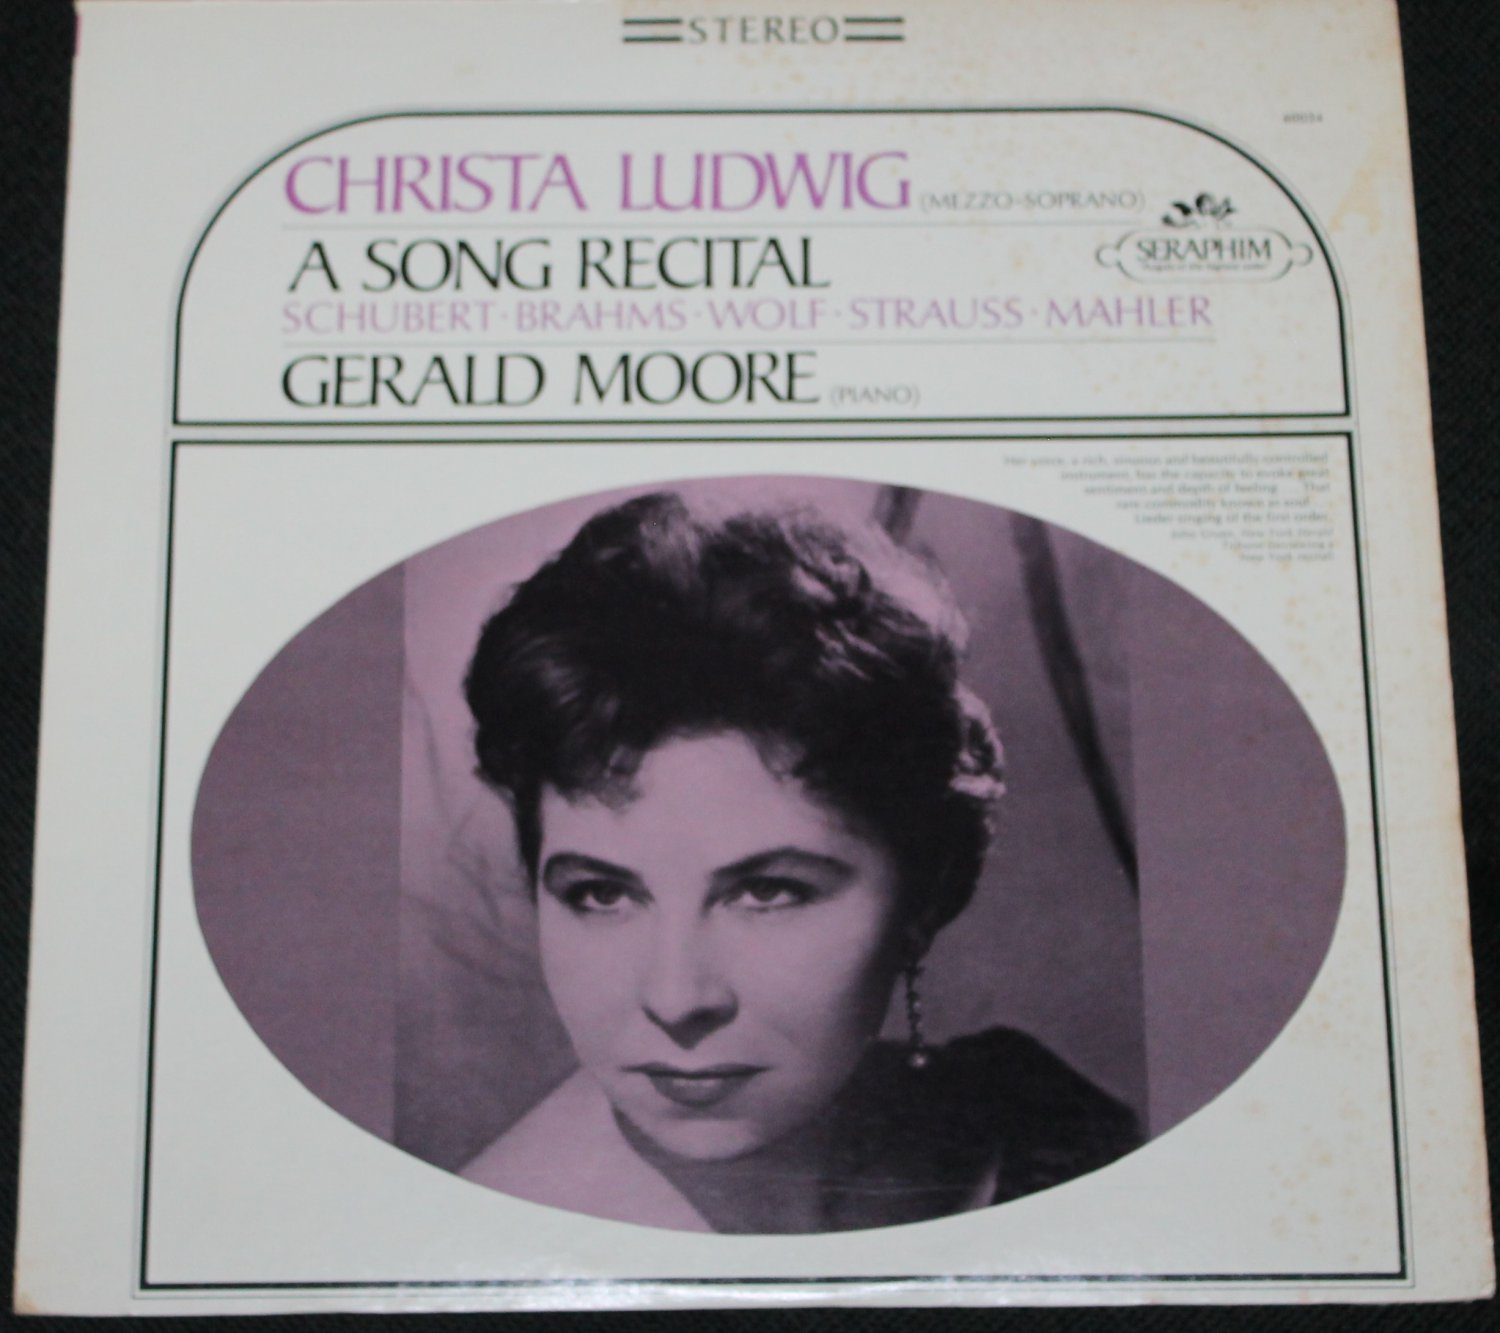 Christa Ludwig A Song Recital Schubert Brahms Wolf Strauss Mahler record - Gerald Moore Piano